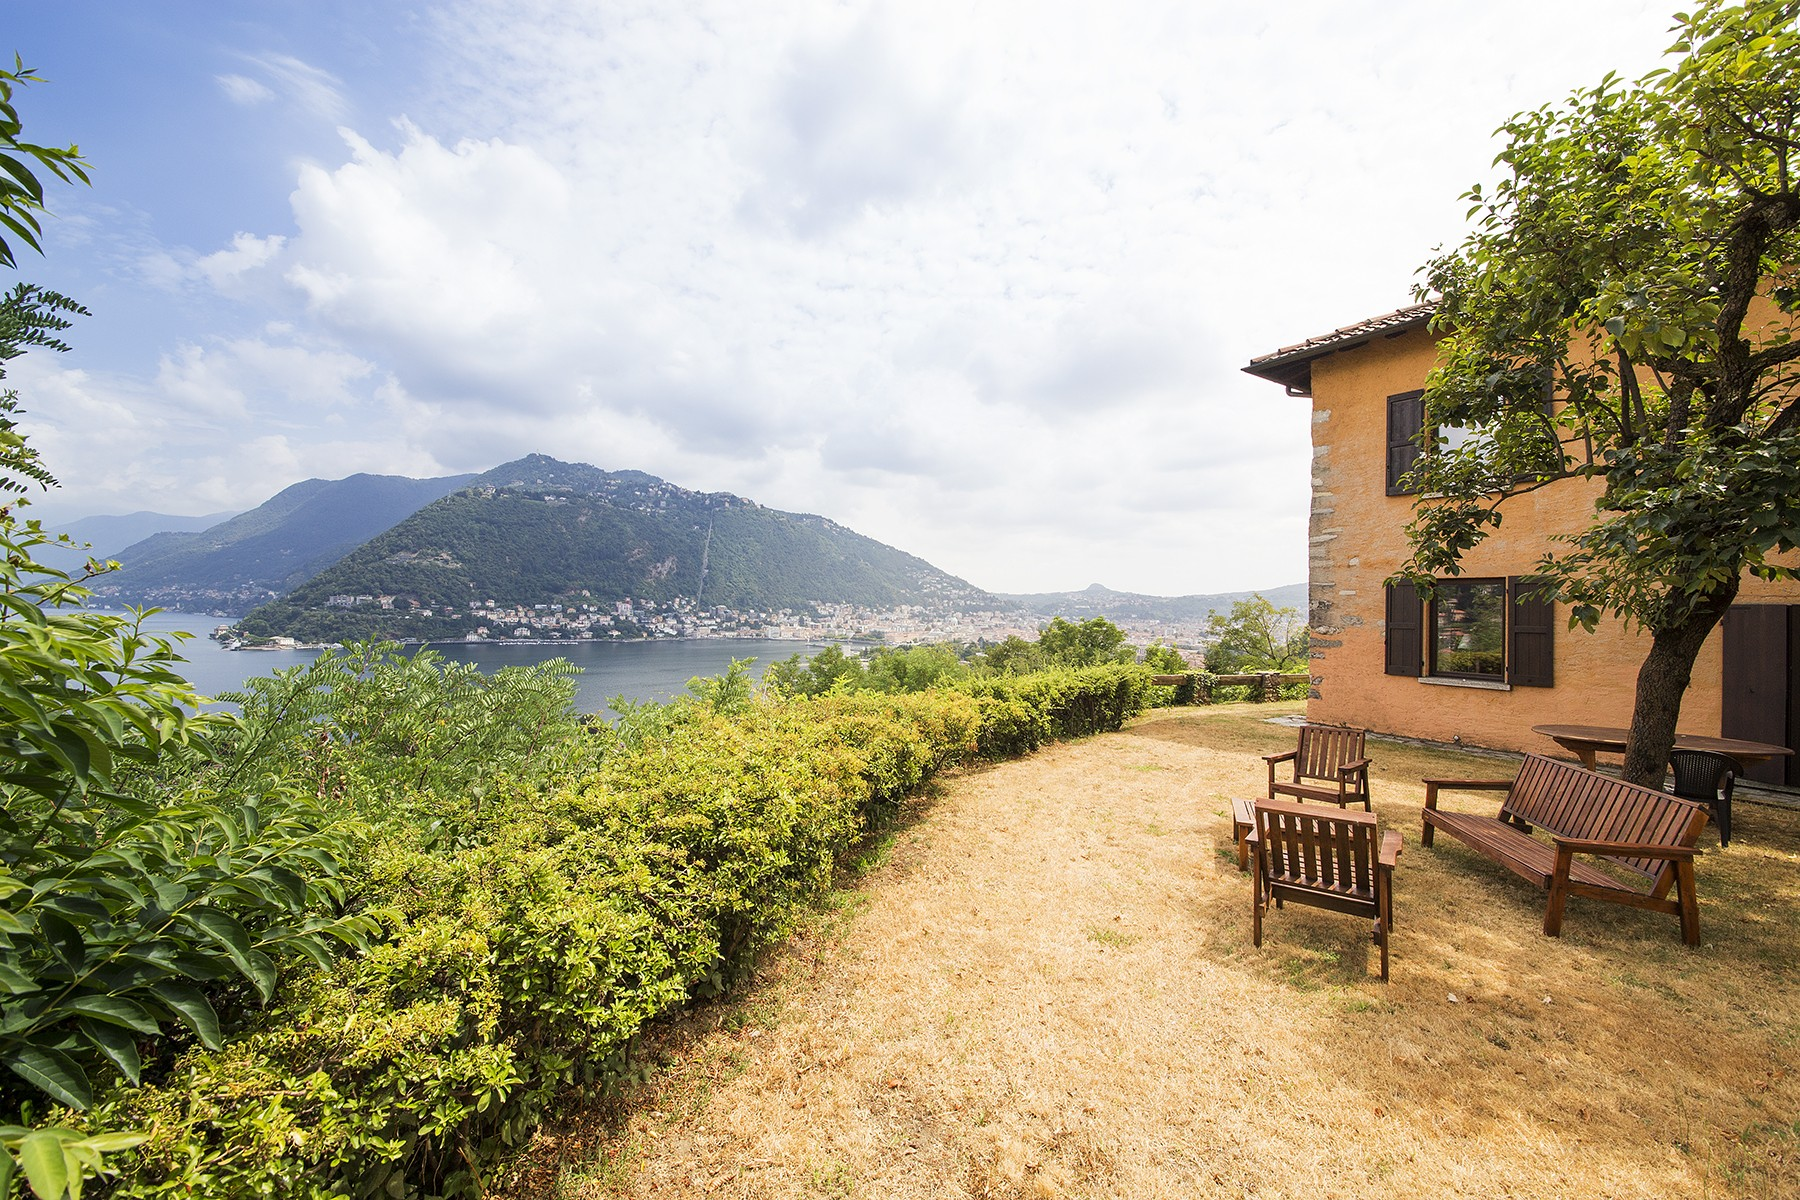 Single Family Home for Sale at Charming villa on the hills of Como with breath-taking views Via Imbonati Como, Como 22100 Italy